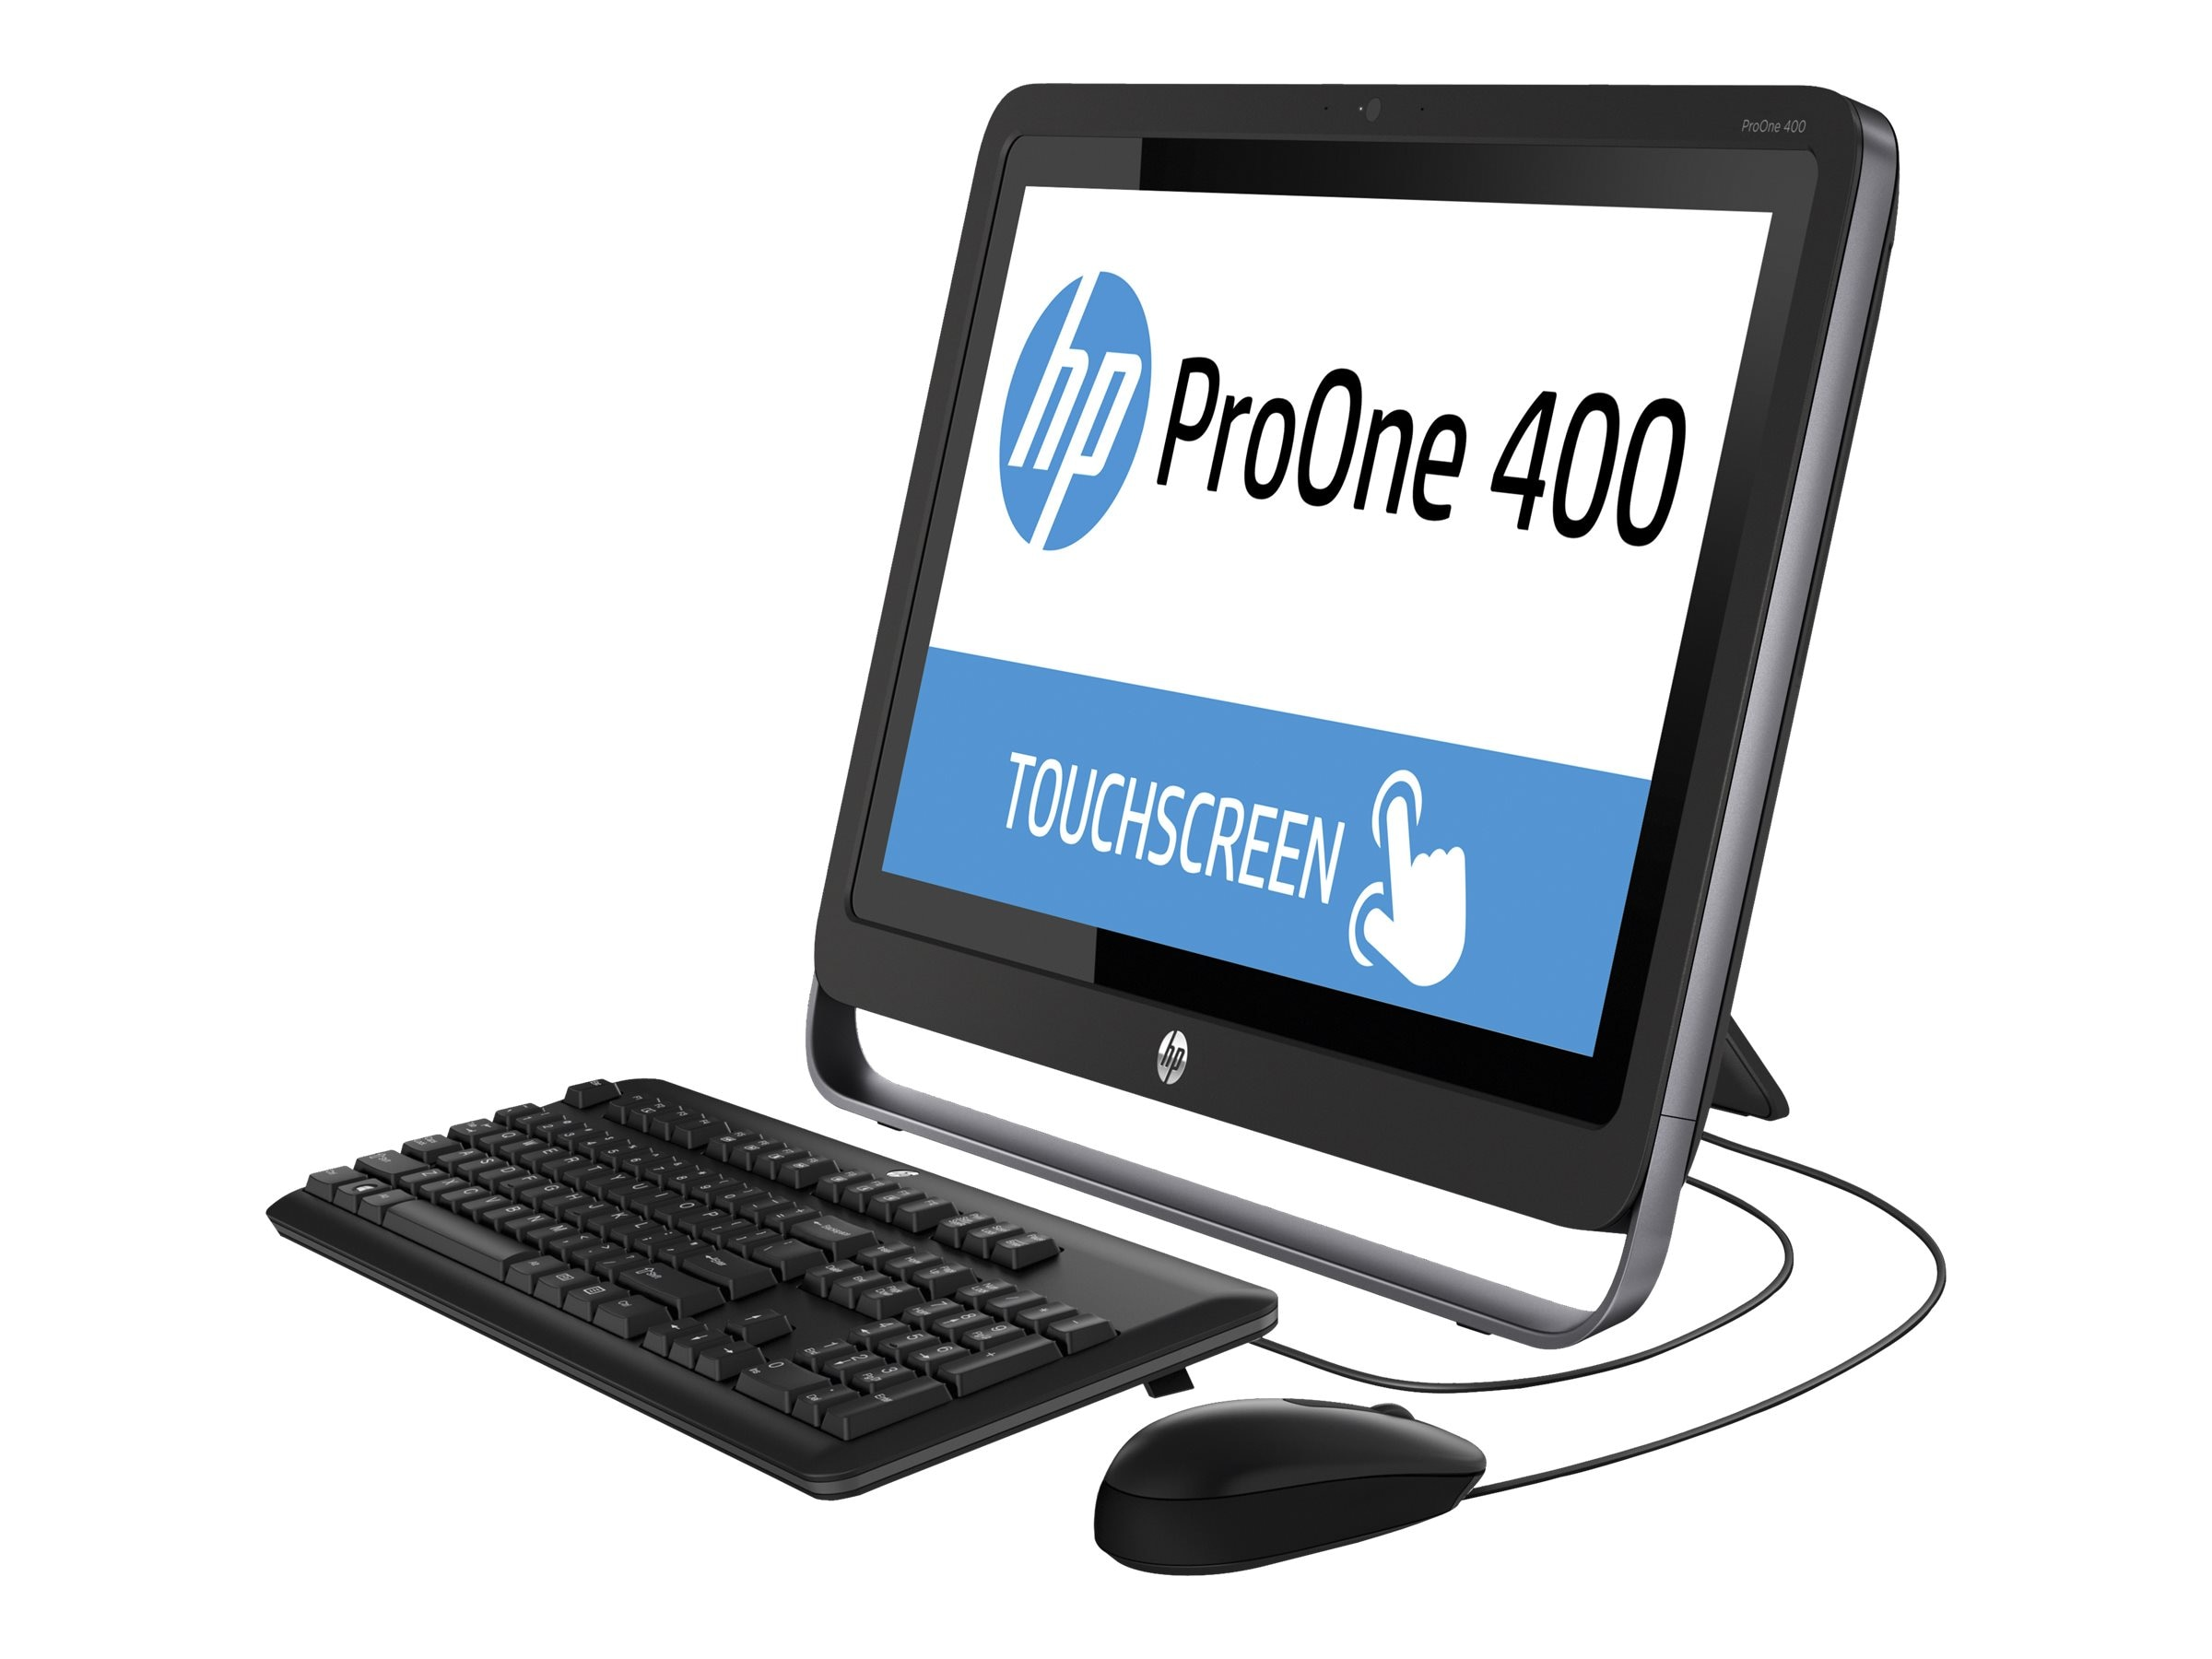 HP Smart Buy ProOne 400 G1 AIO Core i3-4360T 3.2GHz 4GB 500GB GbE abgn WC 21.5 HD Touch W10P64, P0D37UT#ABA, 28184850, Desktops - All-in-One